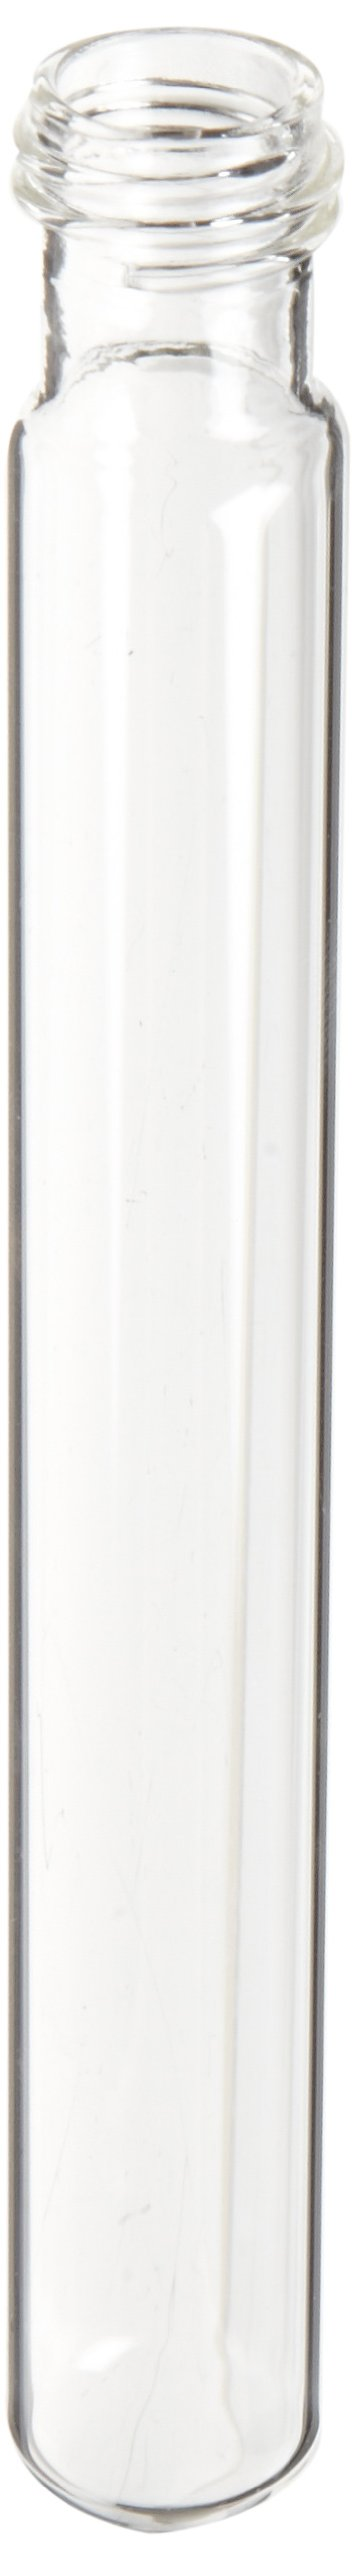 Chemglass CLS-4208-10 Glass 4.5mL Hungate Anaerobic Culture Tube, with Screw Thread 16mm Diameter x 125mm Height (Pack of 100)